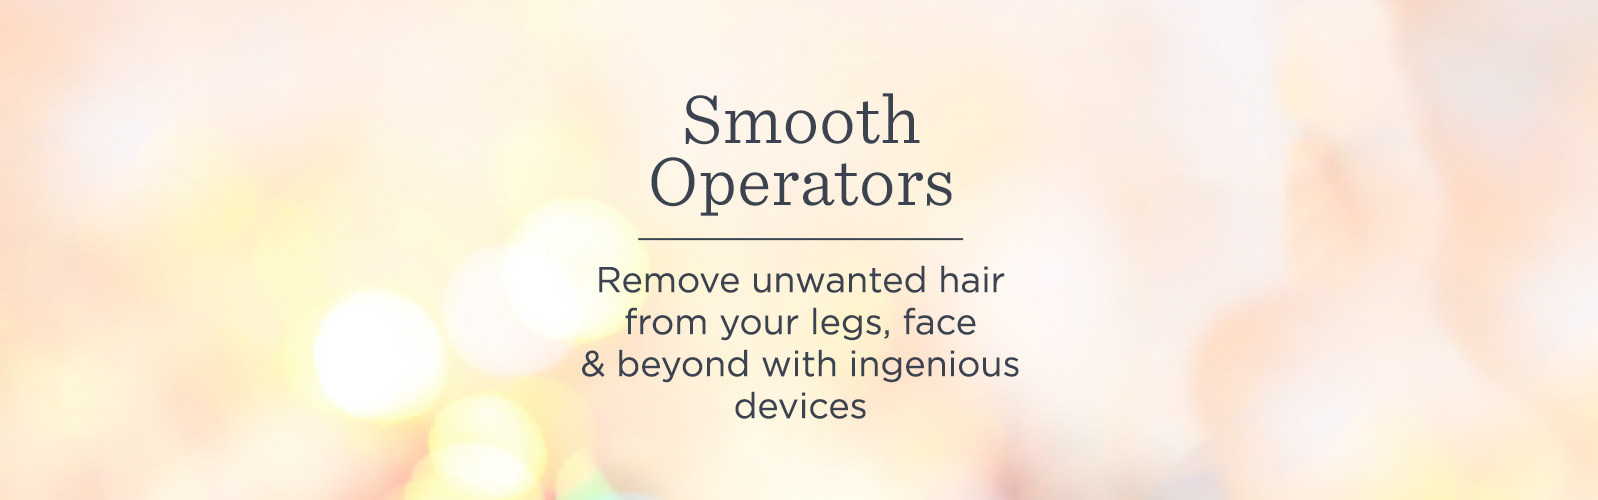 Smooth Operators. Remove unwanted hair from your legs, face & beyond with ingenious devices